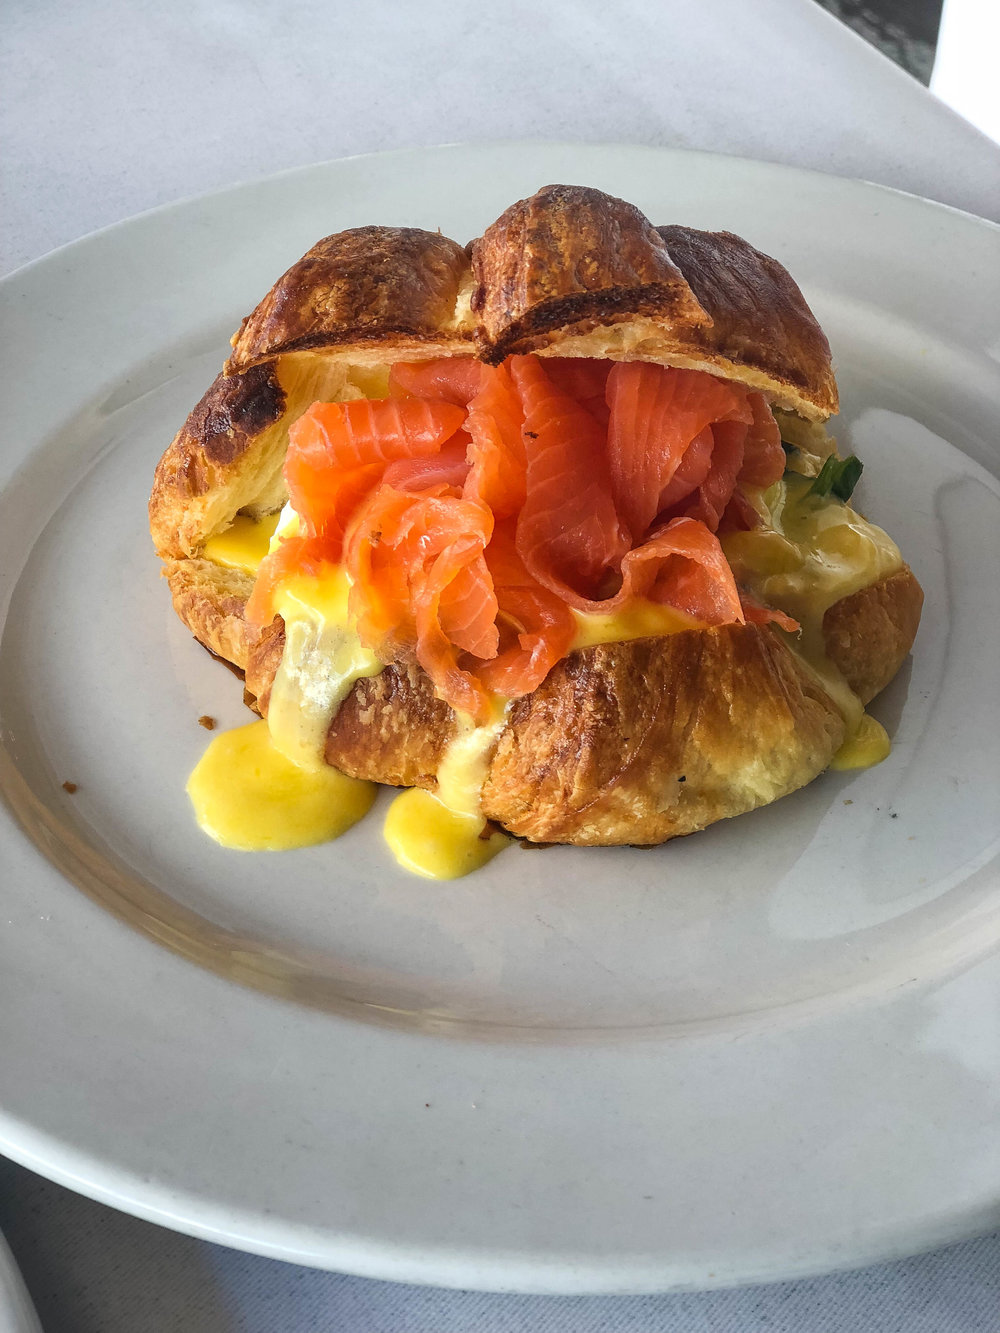 Breakfast croissant with smoked salmon, hollandaise, and scrambled eggs